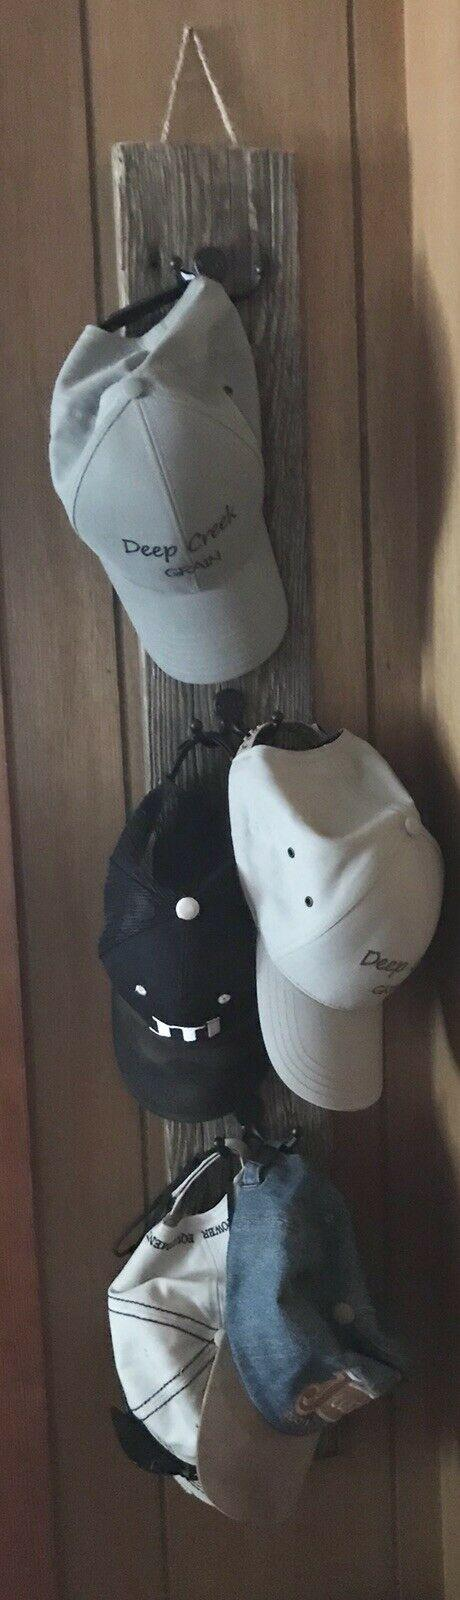 Reclaimed Barn Wood Vertical Double Hooks for Caps Hats Purses etc Rustic